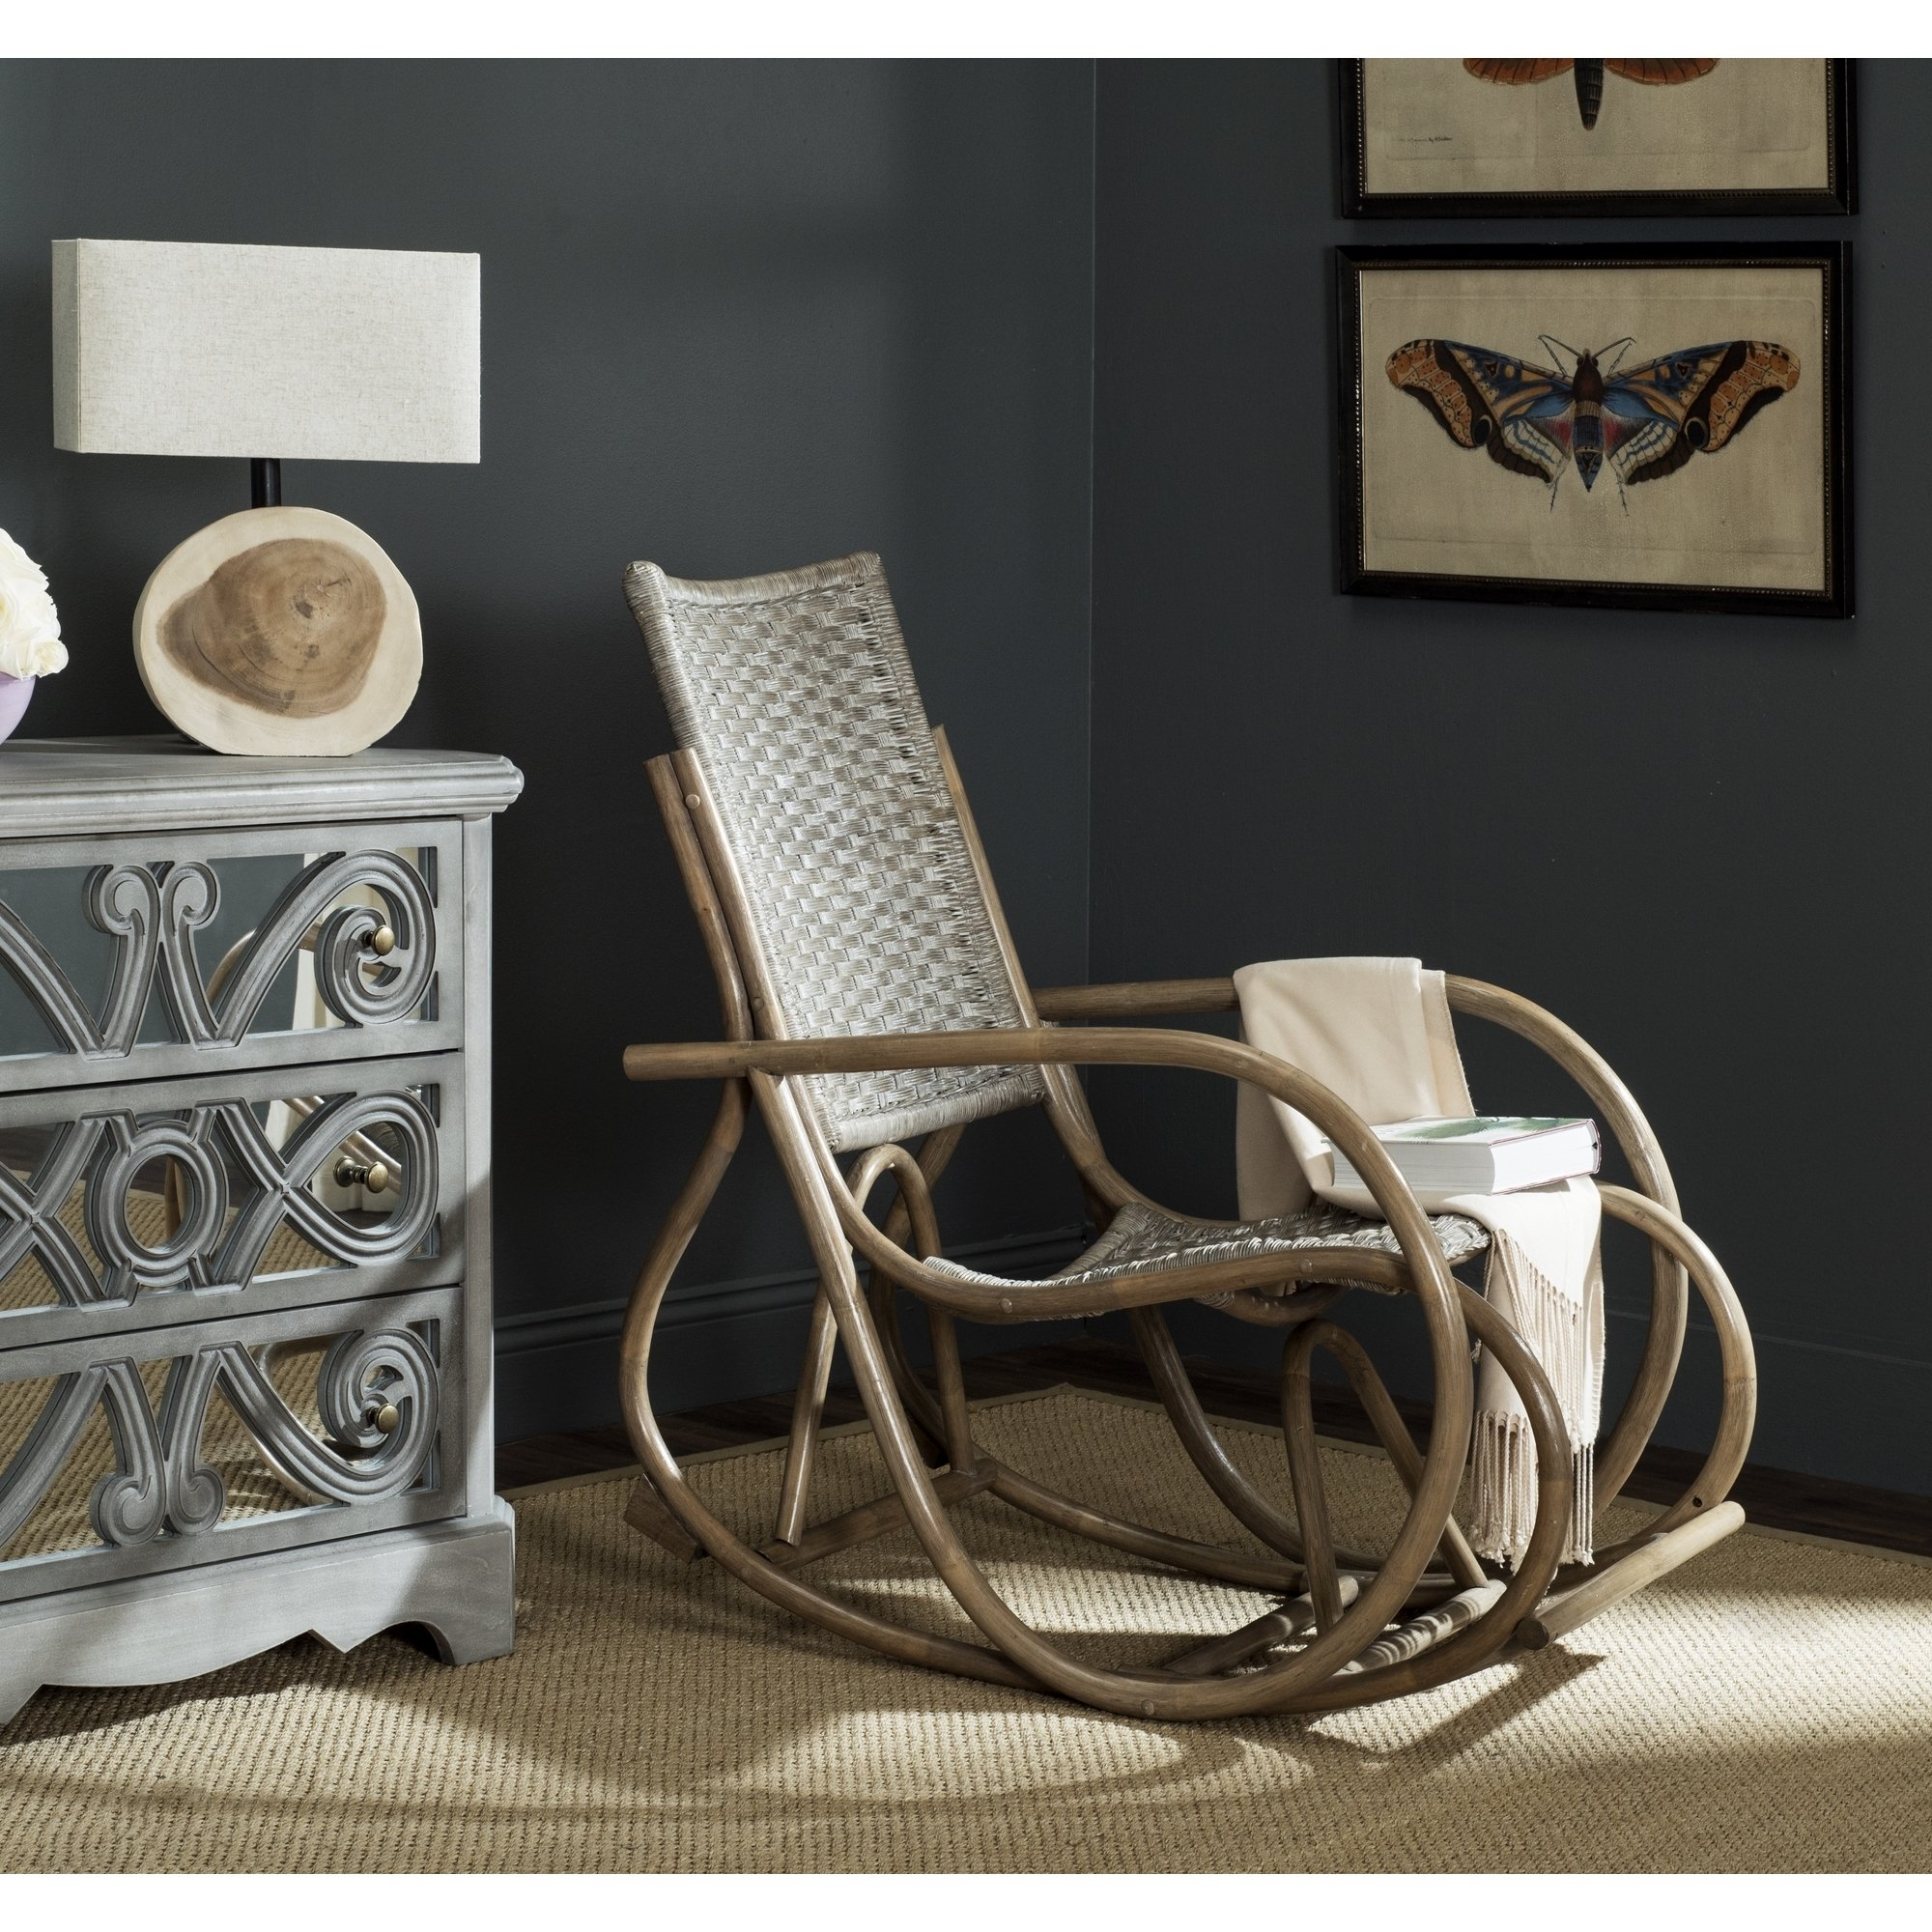 Shop Safavieh Bali Antique Grey Rocking Chair – Free Shipping Today With Regard To Katrina Blue Swivel Glider Chairs (Image 18 of 20)